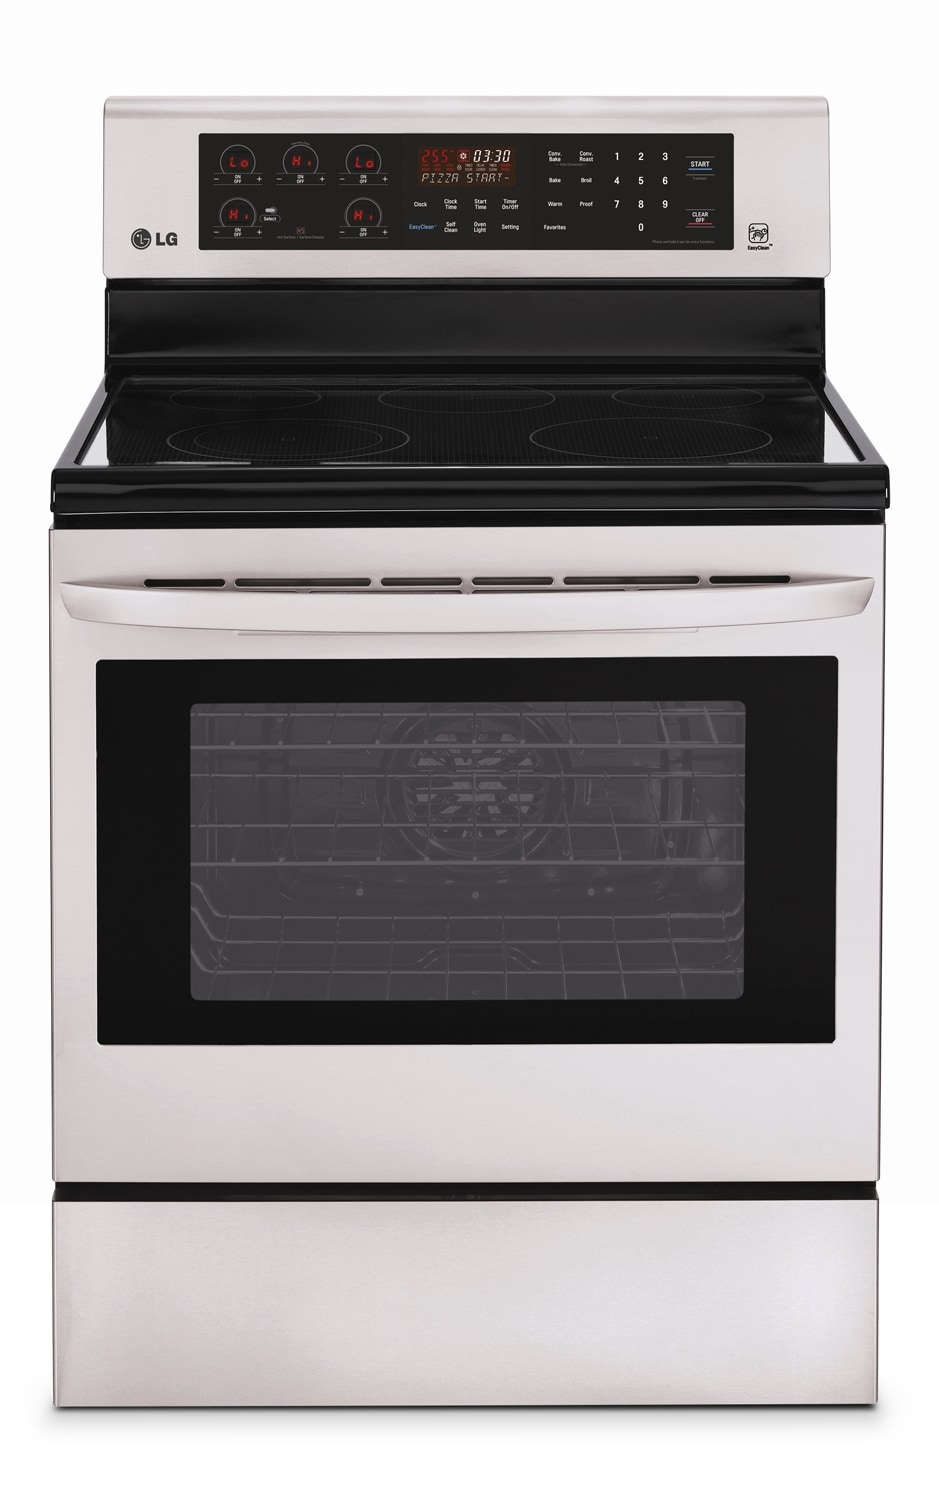 Cooking Products - LG Appliances Freestanding Stainless Steel Electric Convection Range (6.3 Cu. Ft.) - LRE6383ST